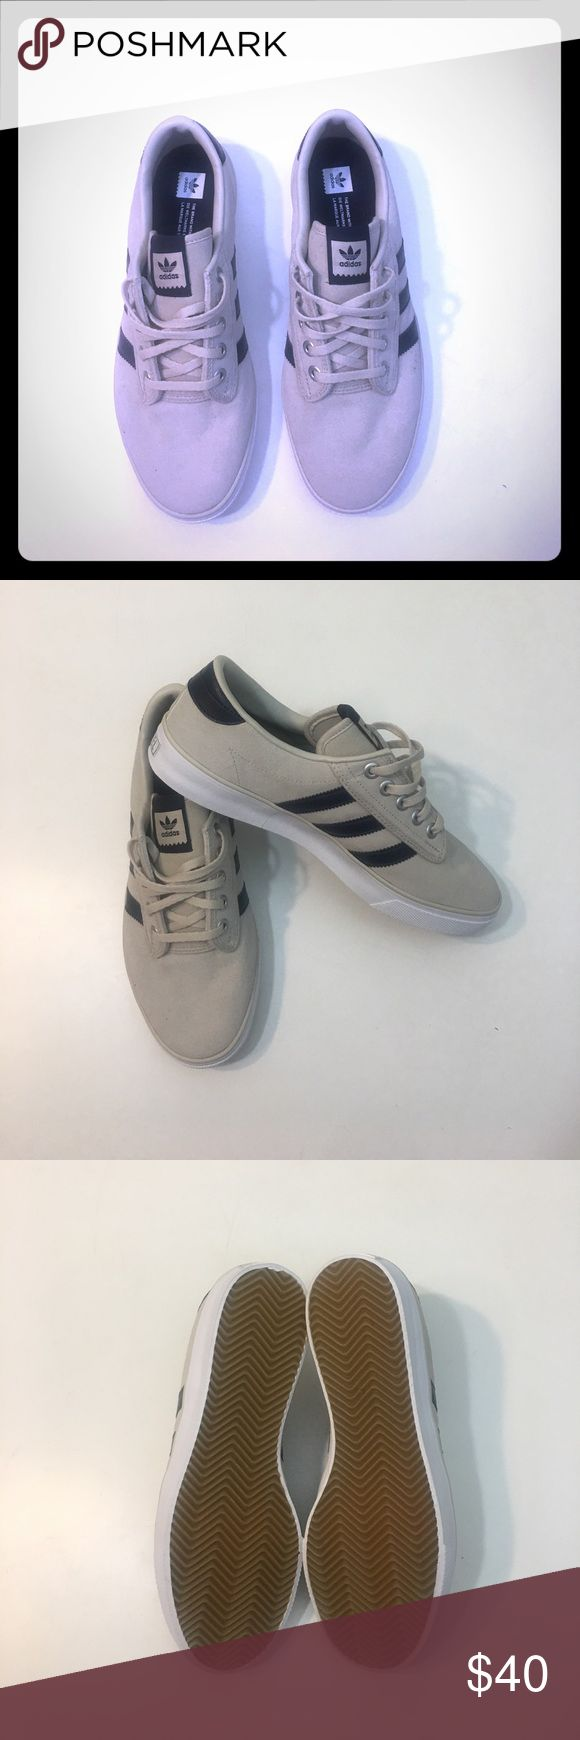 Sz 10-10.5 42 BNWOB ADIDAS ORIGINALS DECK SHOES Super cool Adidas Originals Kiel deck shoes. Reproduction of shoes made for the 1972 Kiel Olympics (German Sailing Team). Cool off-white suede upper with navy leather details. Unworn and pristine. I have like 10 pairs of these, and they look great with everything. Sadly these are too small. My loss, your gain. Sigh. Adidas Shoes Sneakers